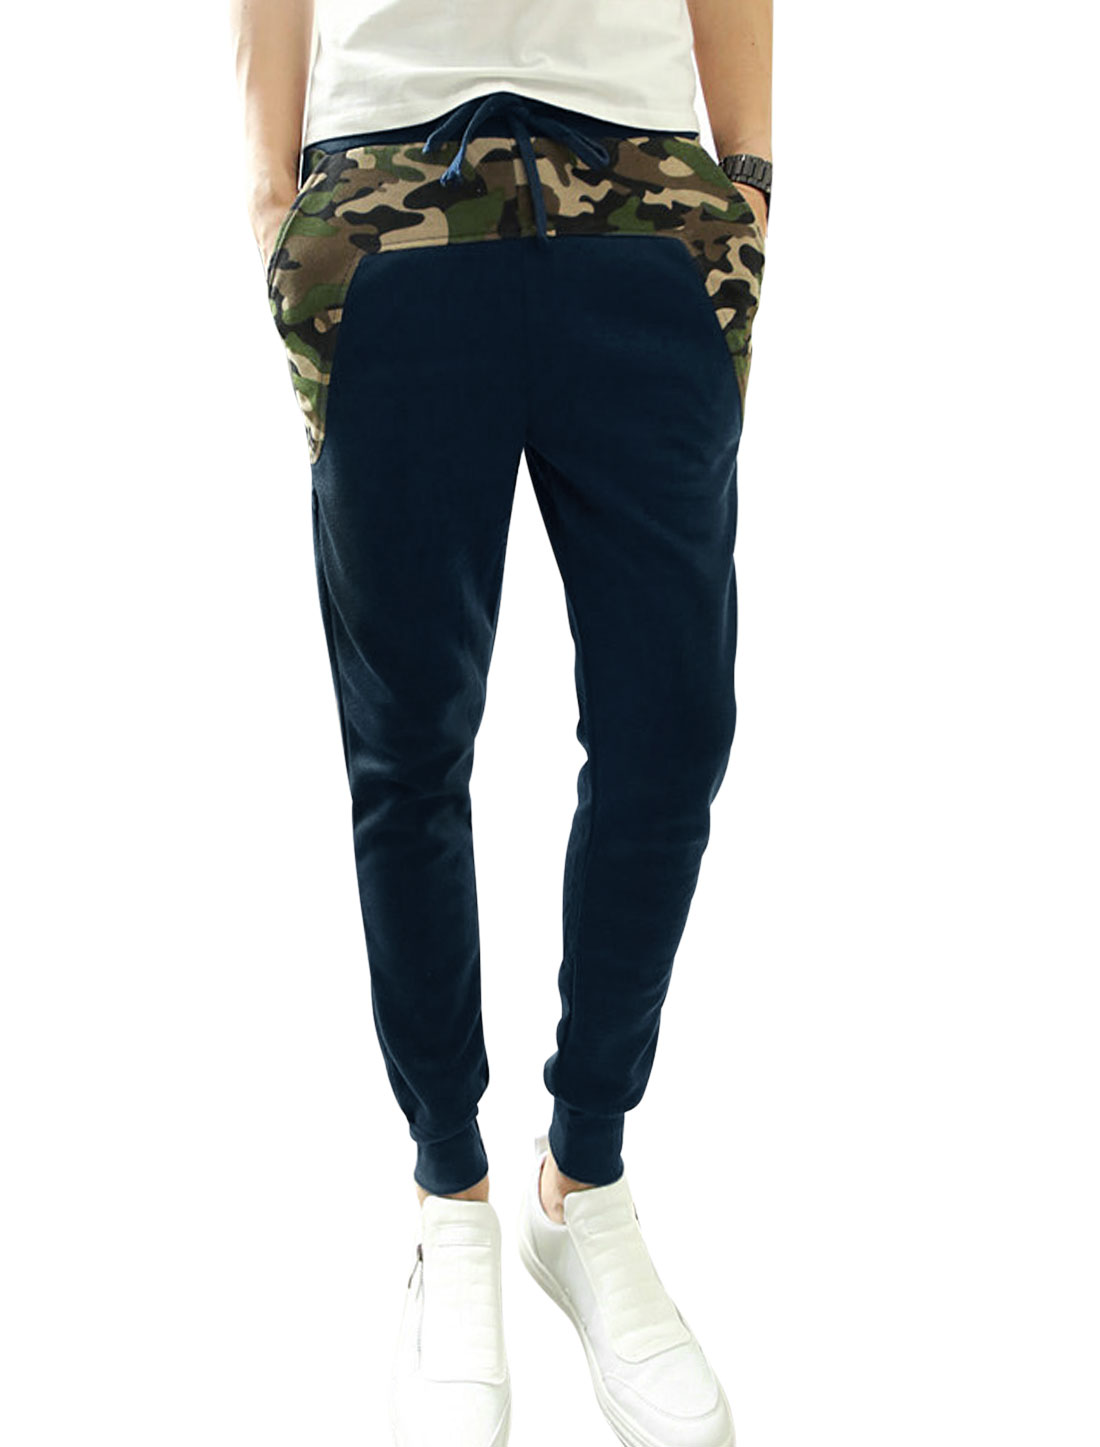 Men Ribbed Cuffs Camouflage Pattern Tapered Leg Design Pants Navy Blue W30